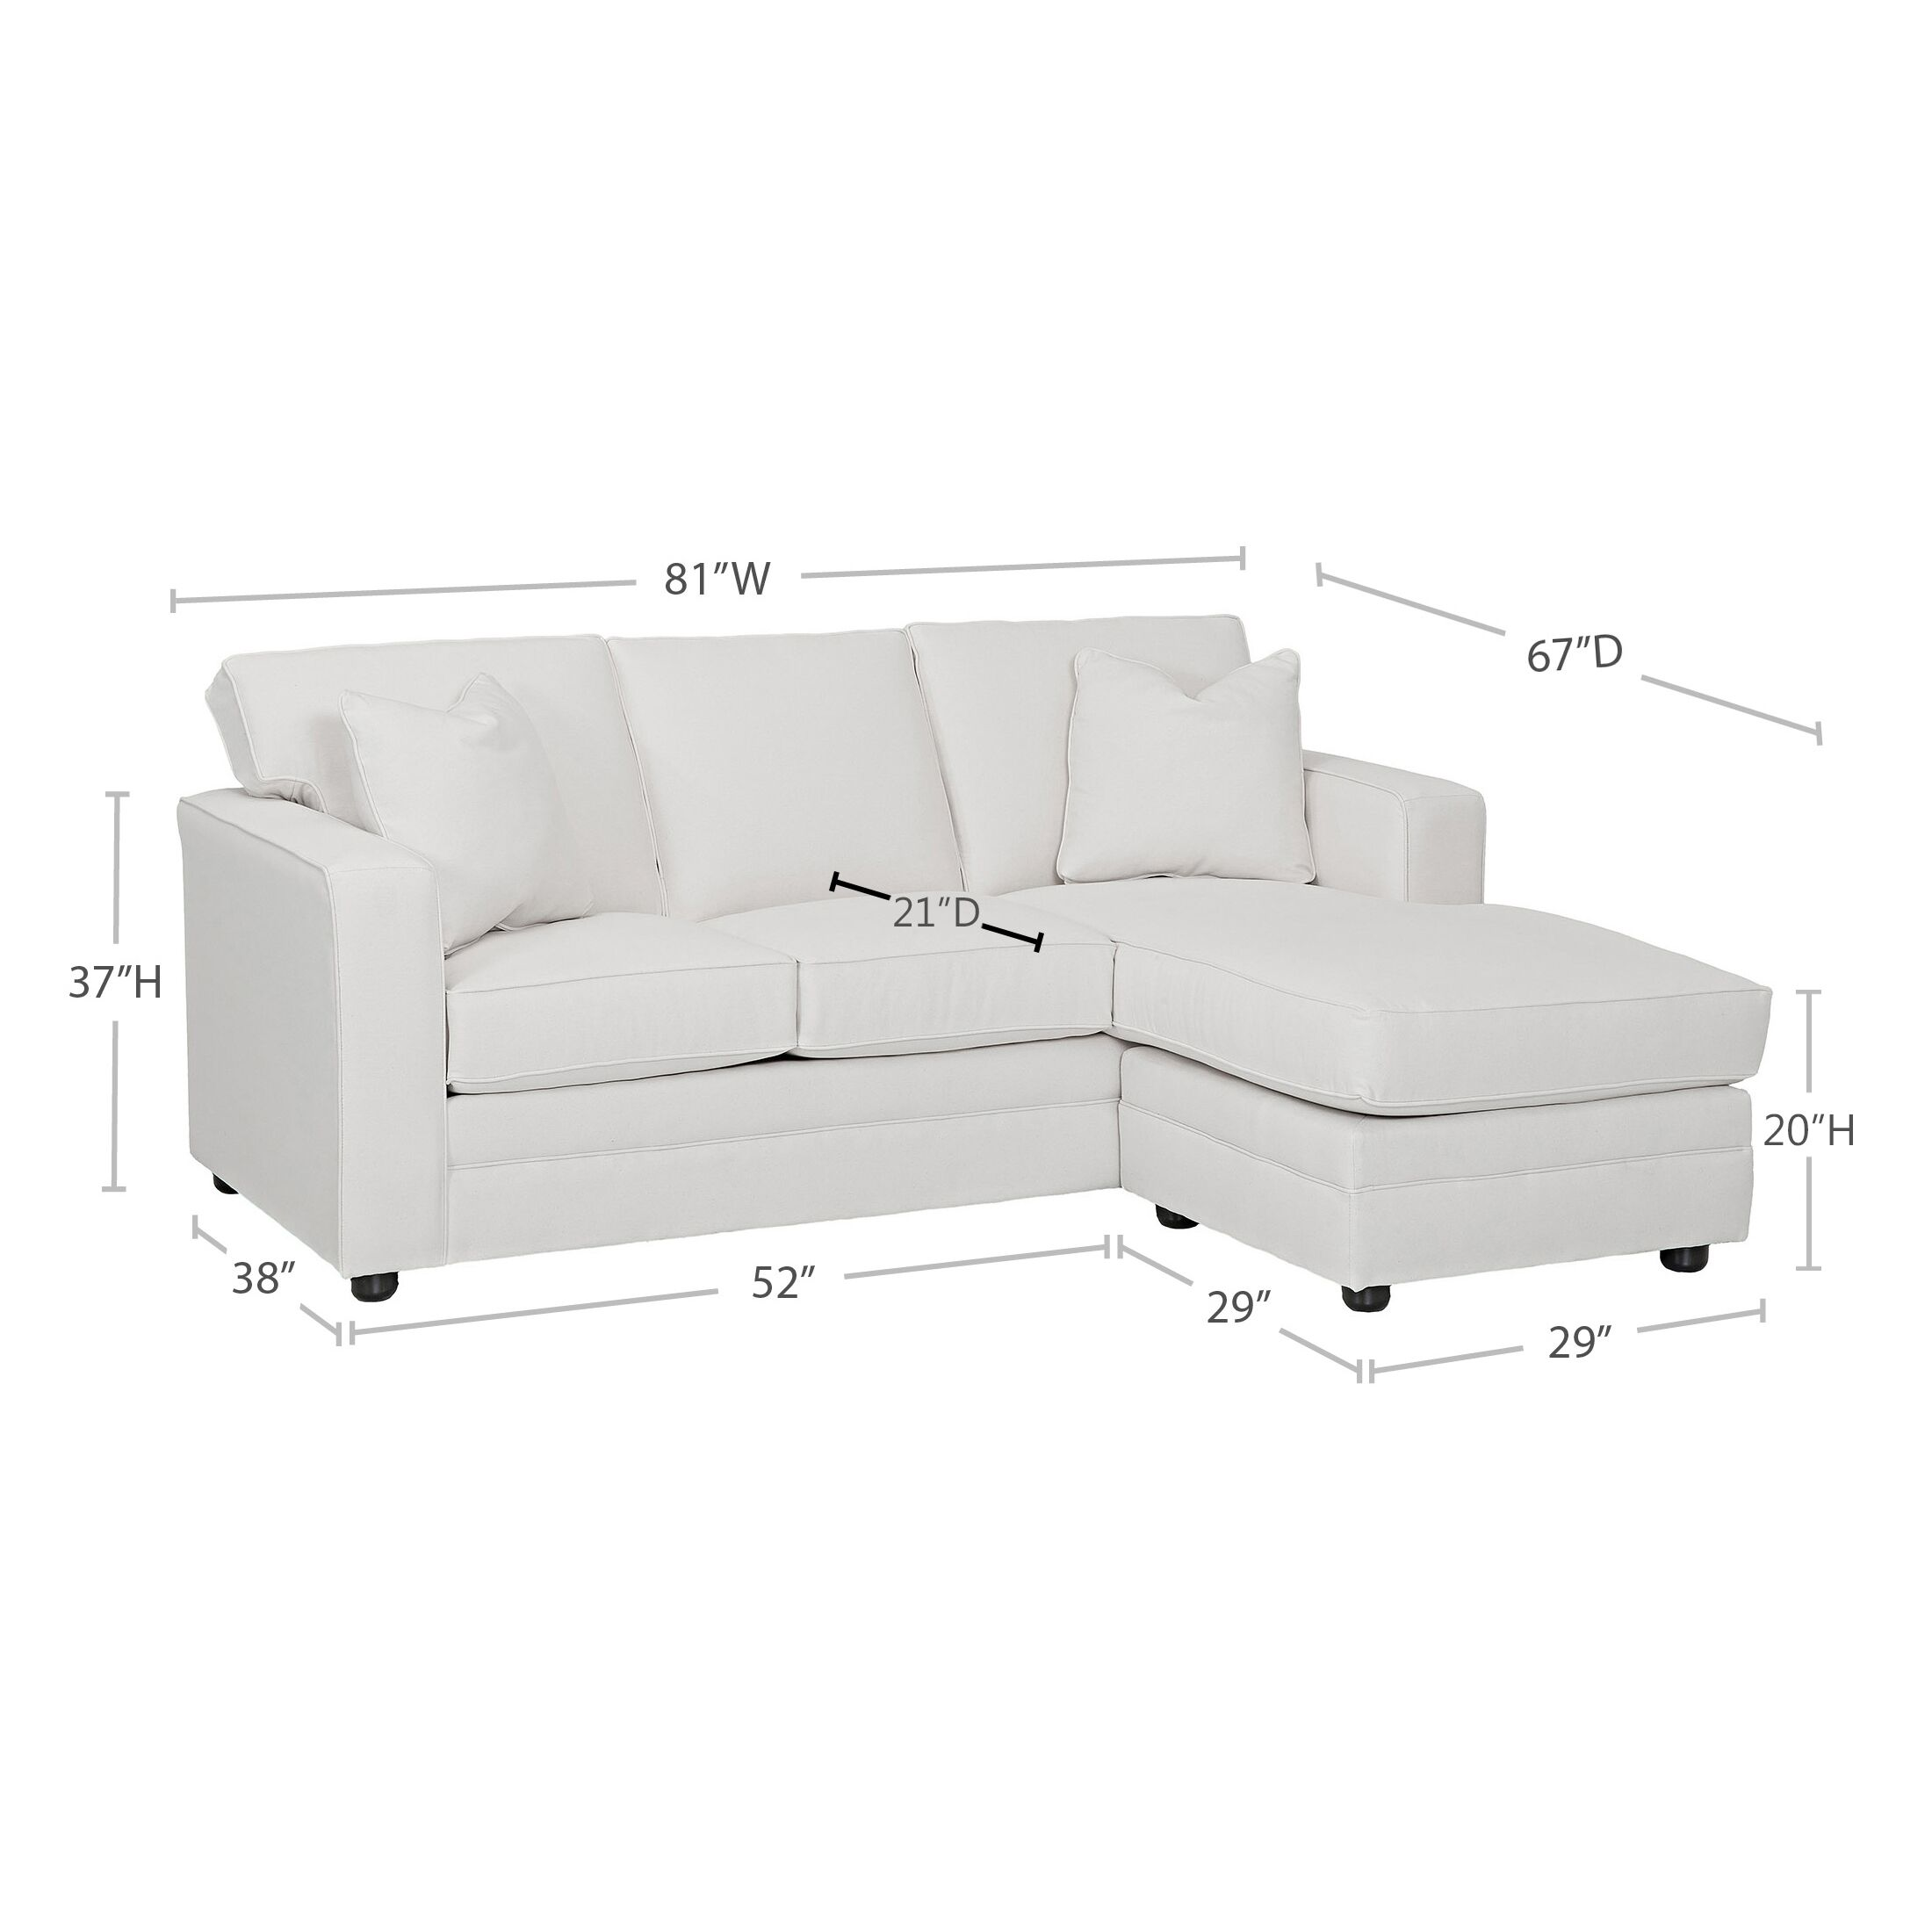 Andrew Reversible Sectional Body Fabric: Hanover Concrete, Pillow Fabric: Lizzy Linen, Piping Fabric: Spinnsol Optic White